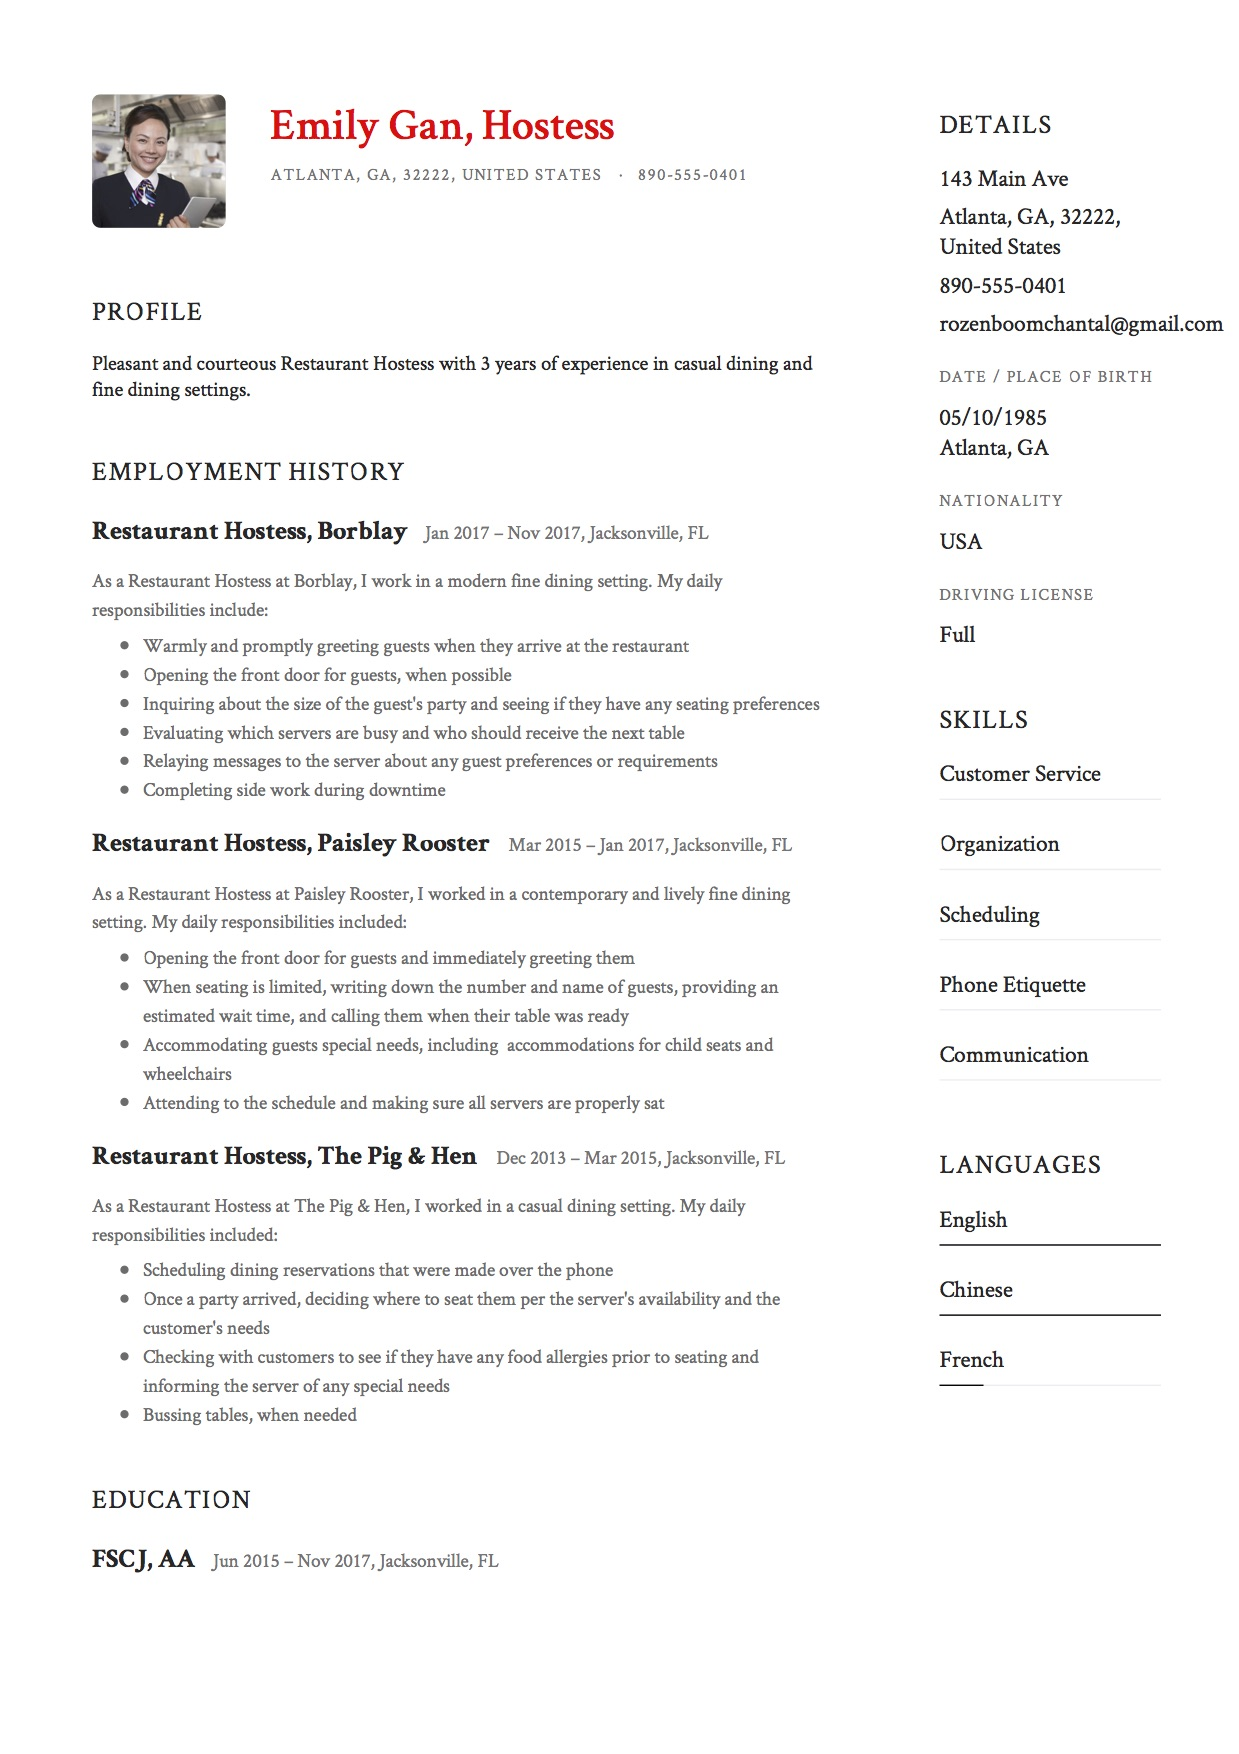 12 Free Restaurant Hostess Resume Samples | Different Designs |